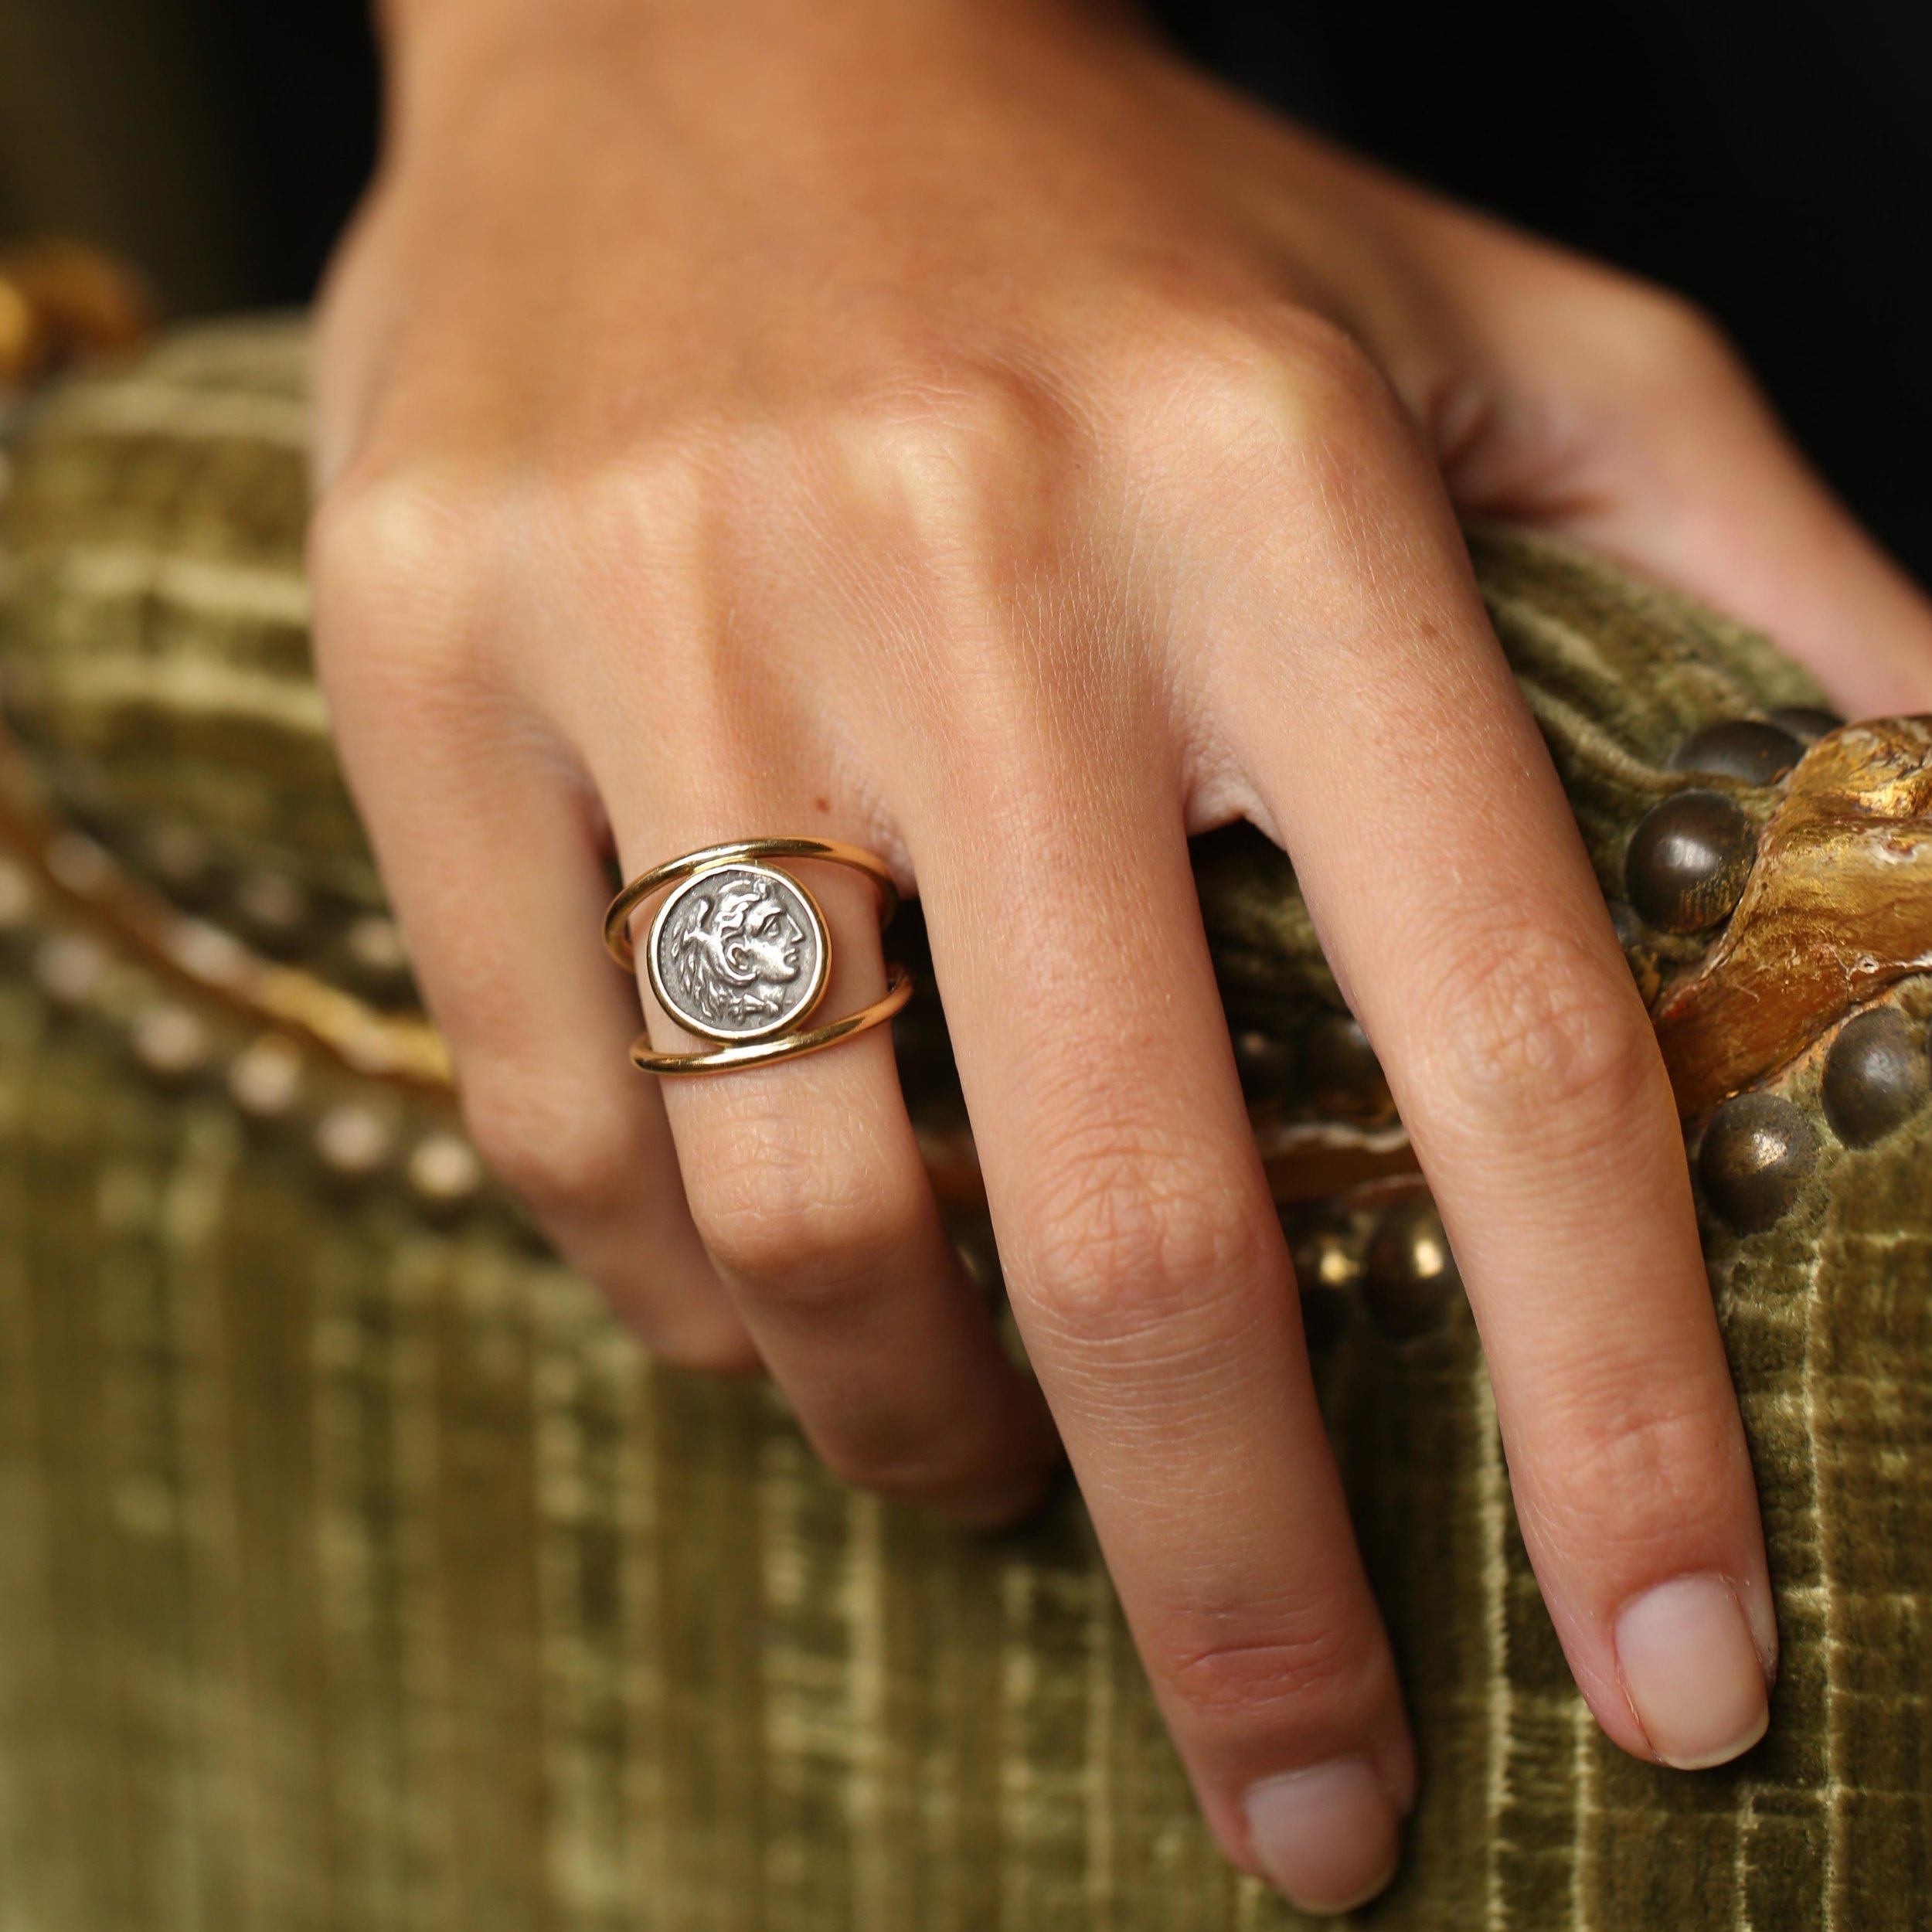 Benedetta's Armor: The Alexander the Great ring